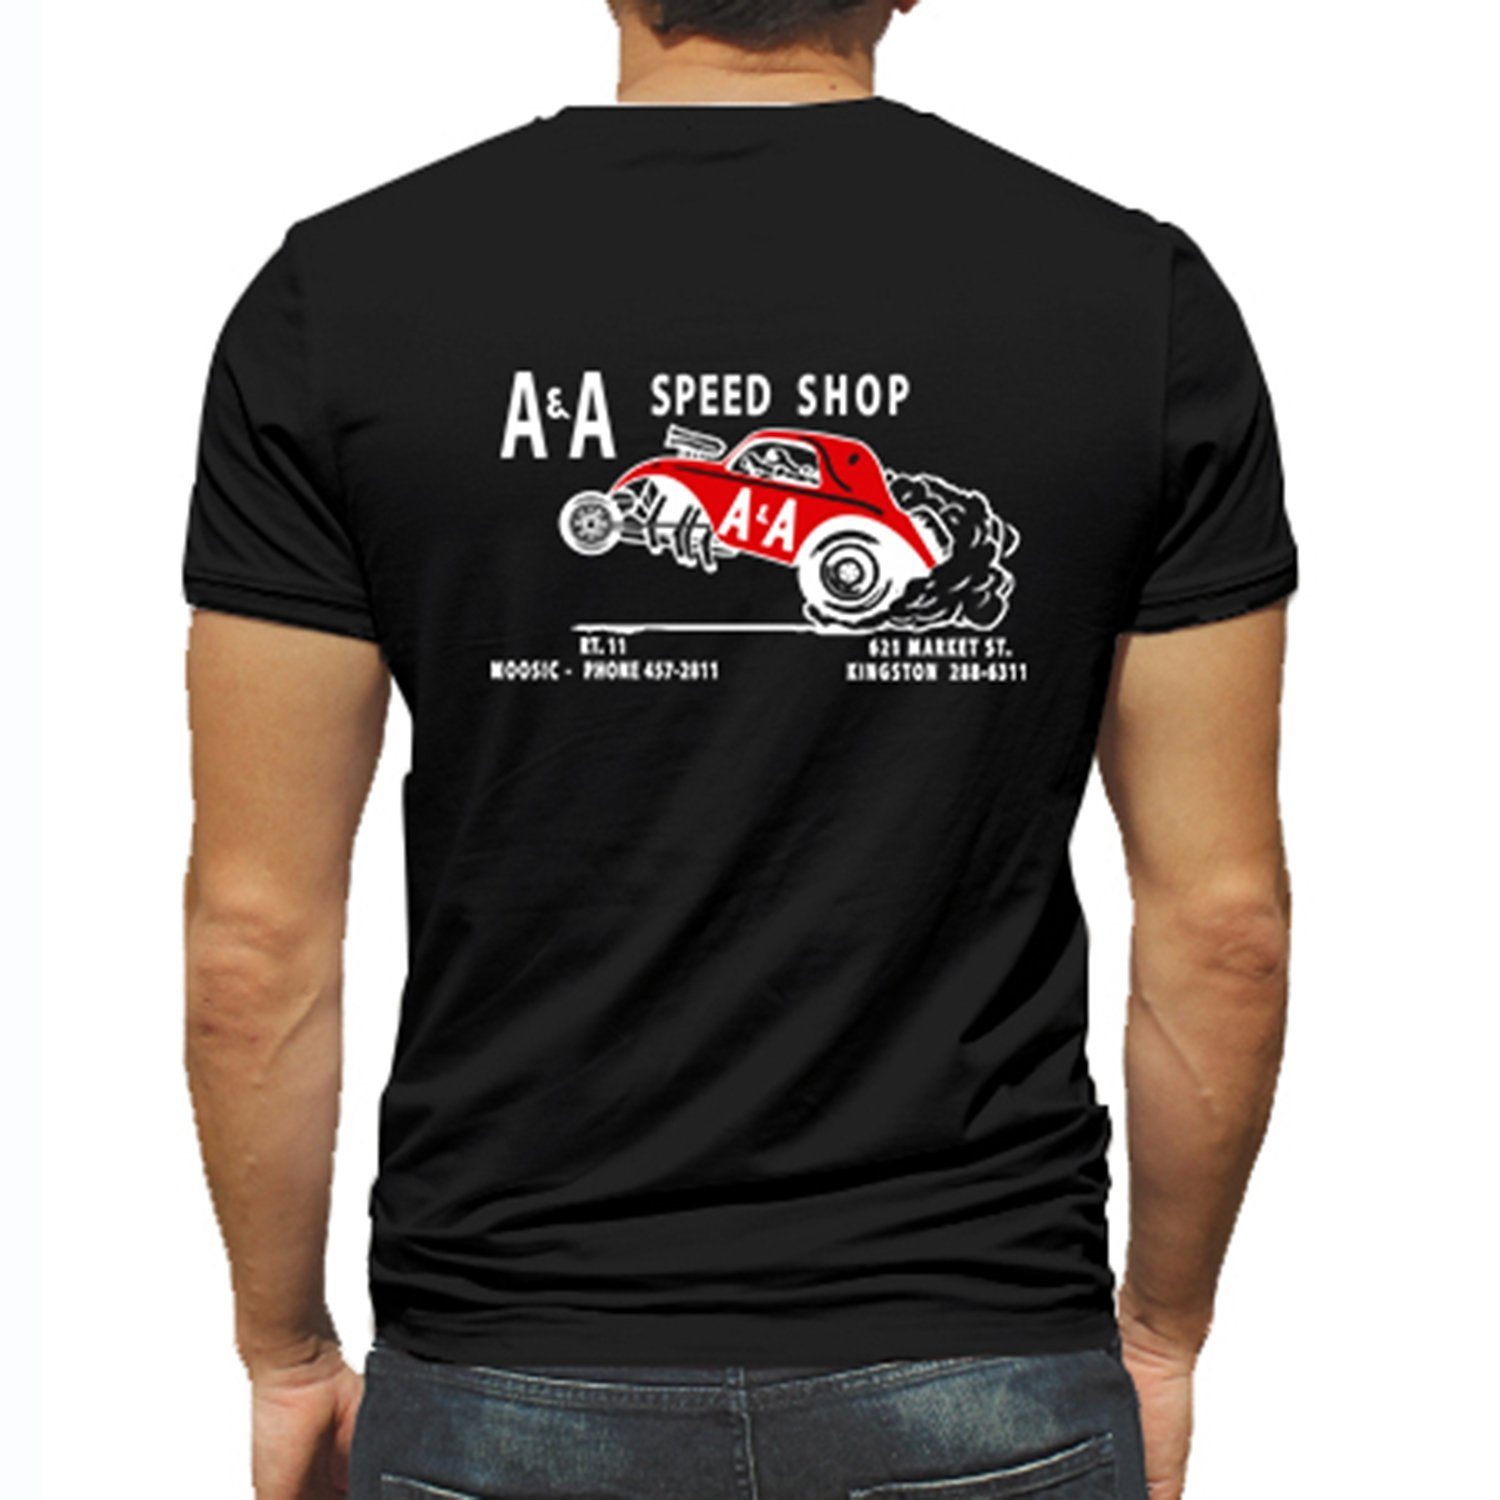 2018 New Summer Style Men Tee Shirt A&A Speed Shop Hot Rod Rat Nostalgia Drag Race Rac Black Short Sleeve Shirt